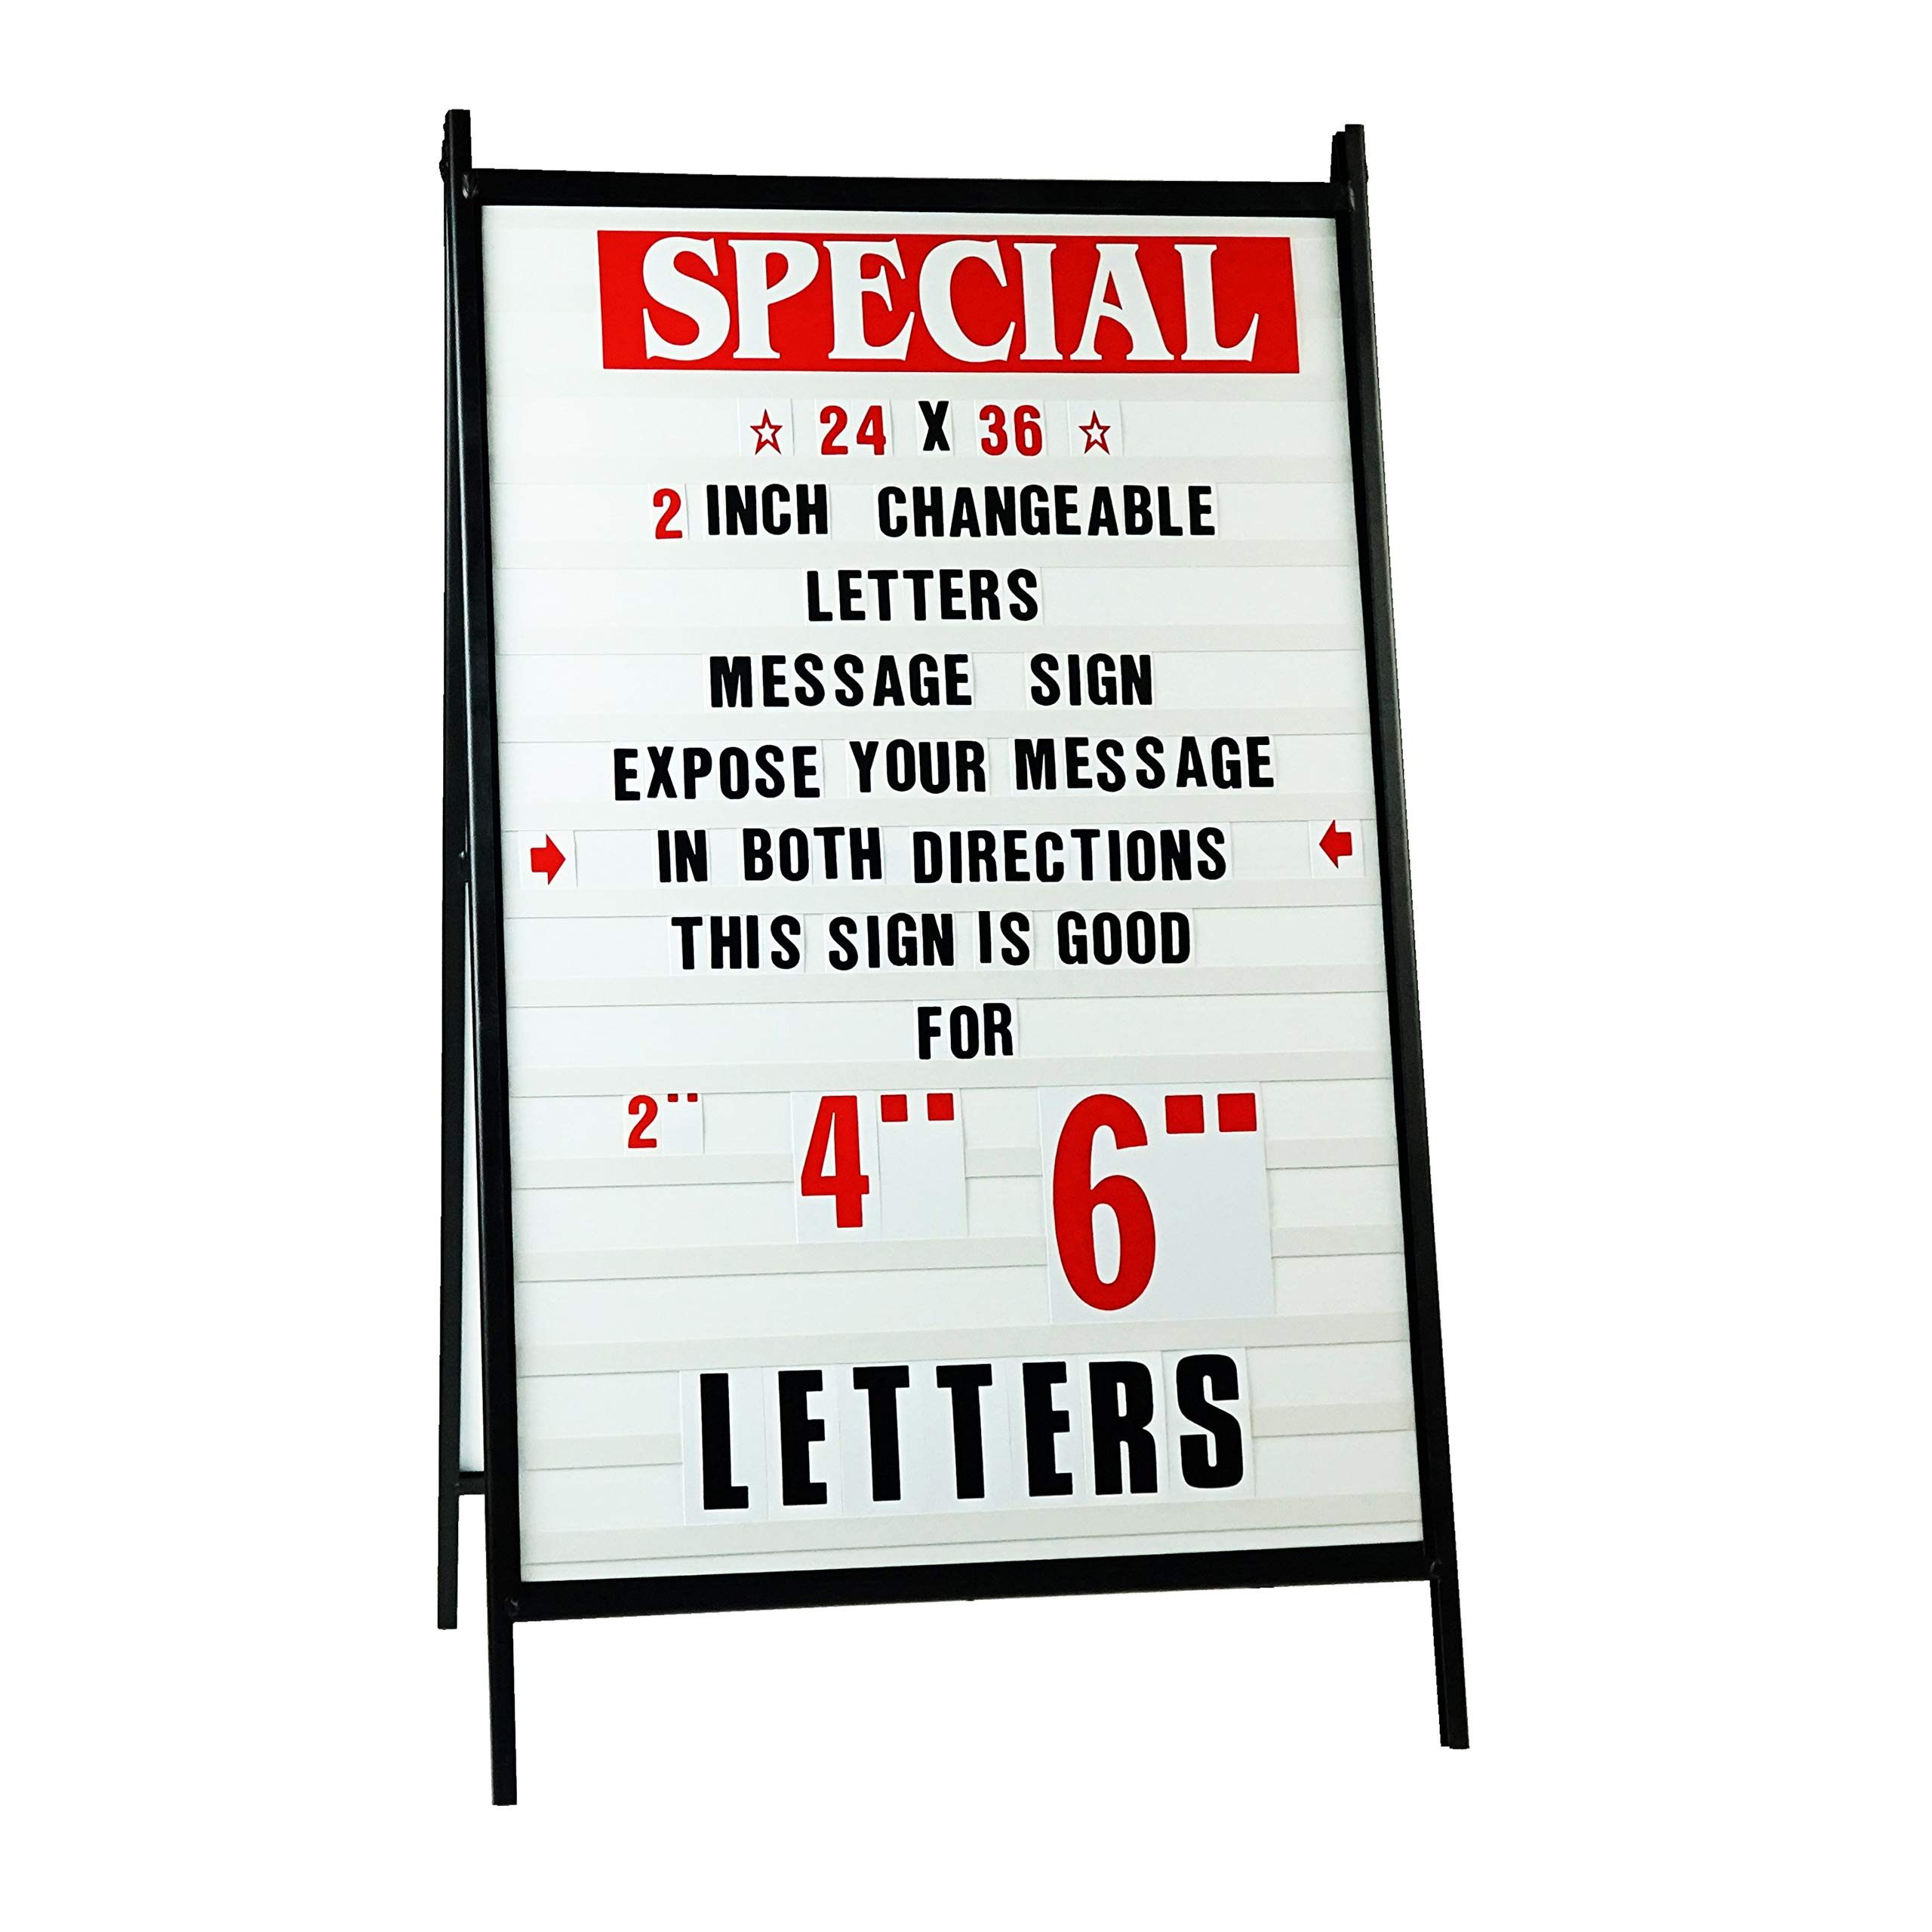 Sidewalk A Frame Changeable Letters Message Sign with 2 inch Letters Set and 2 Protective Covers